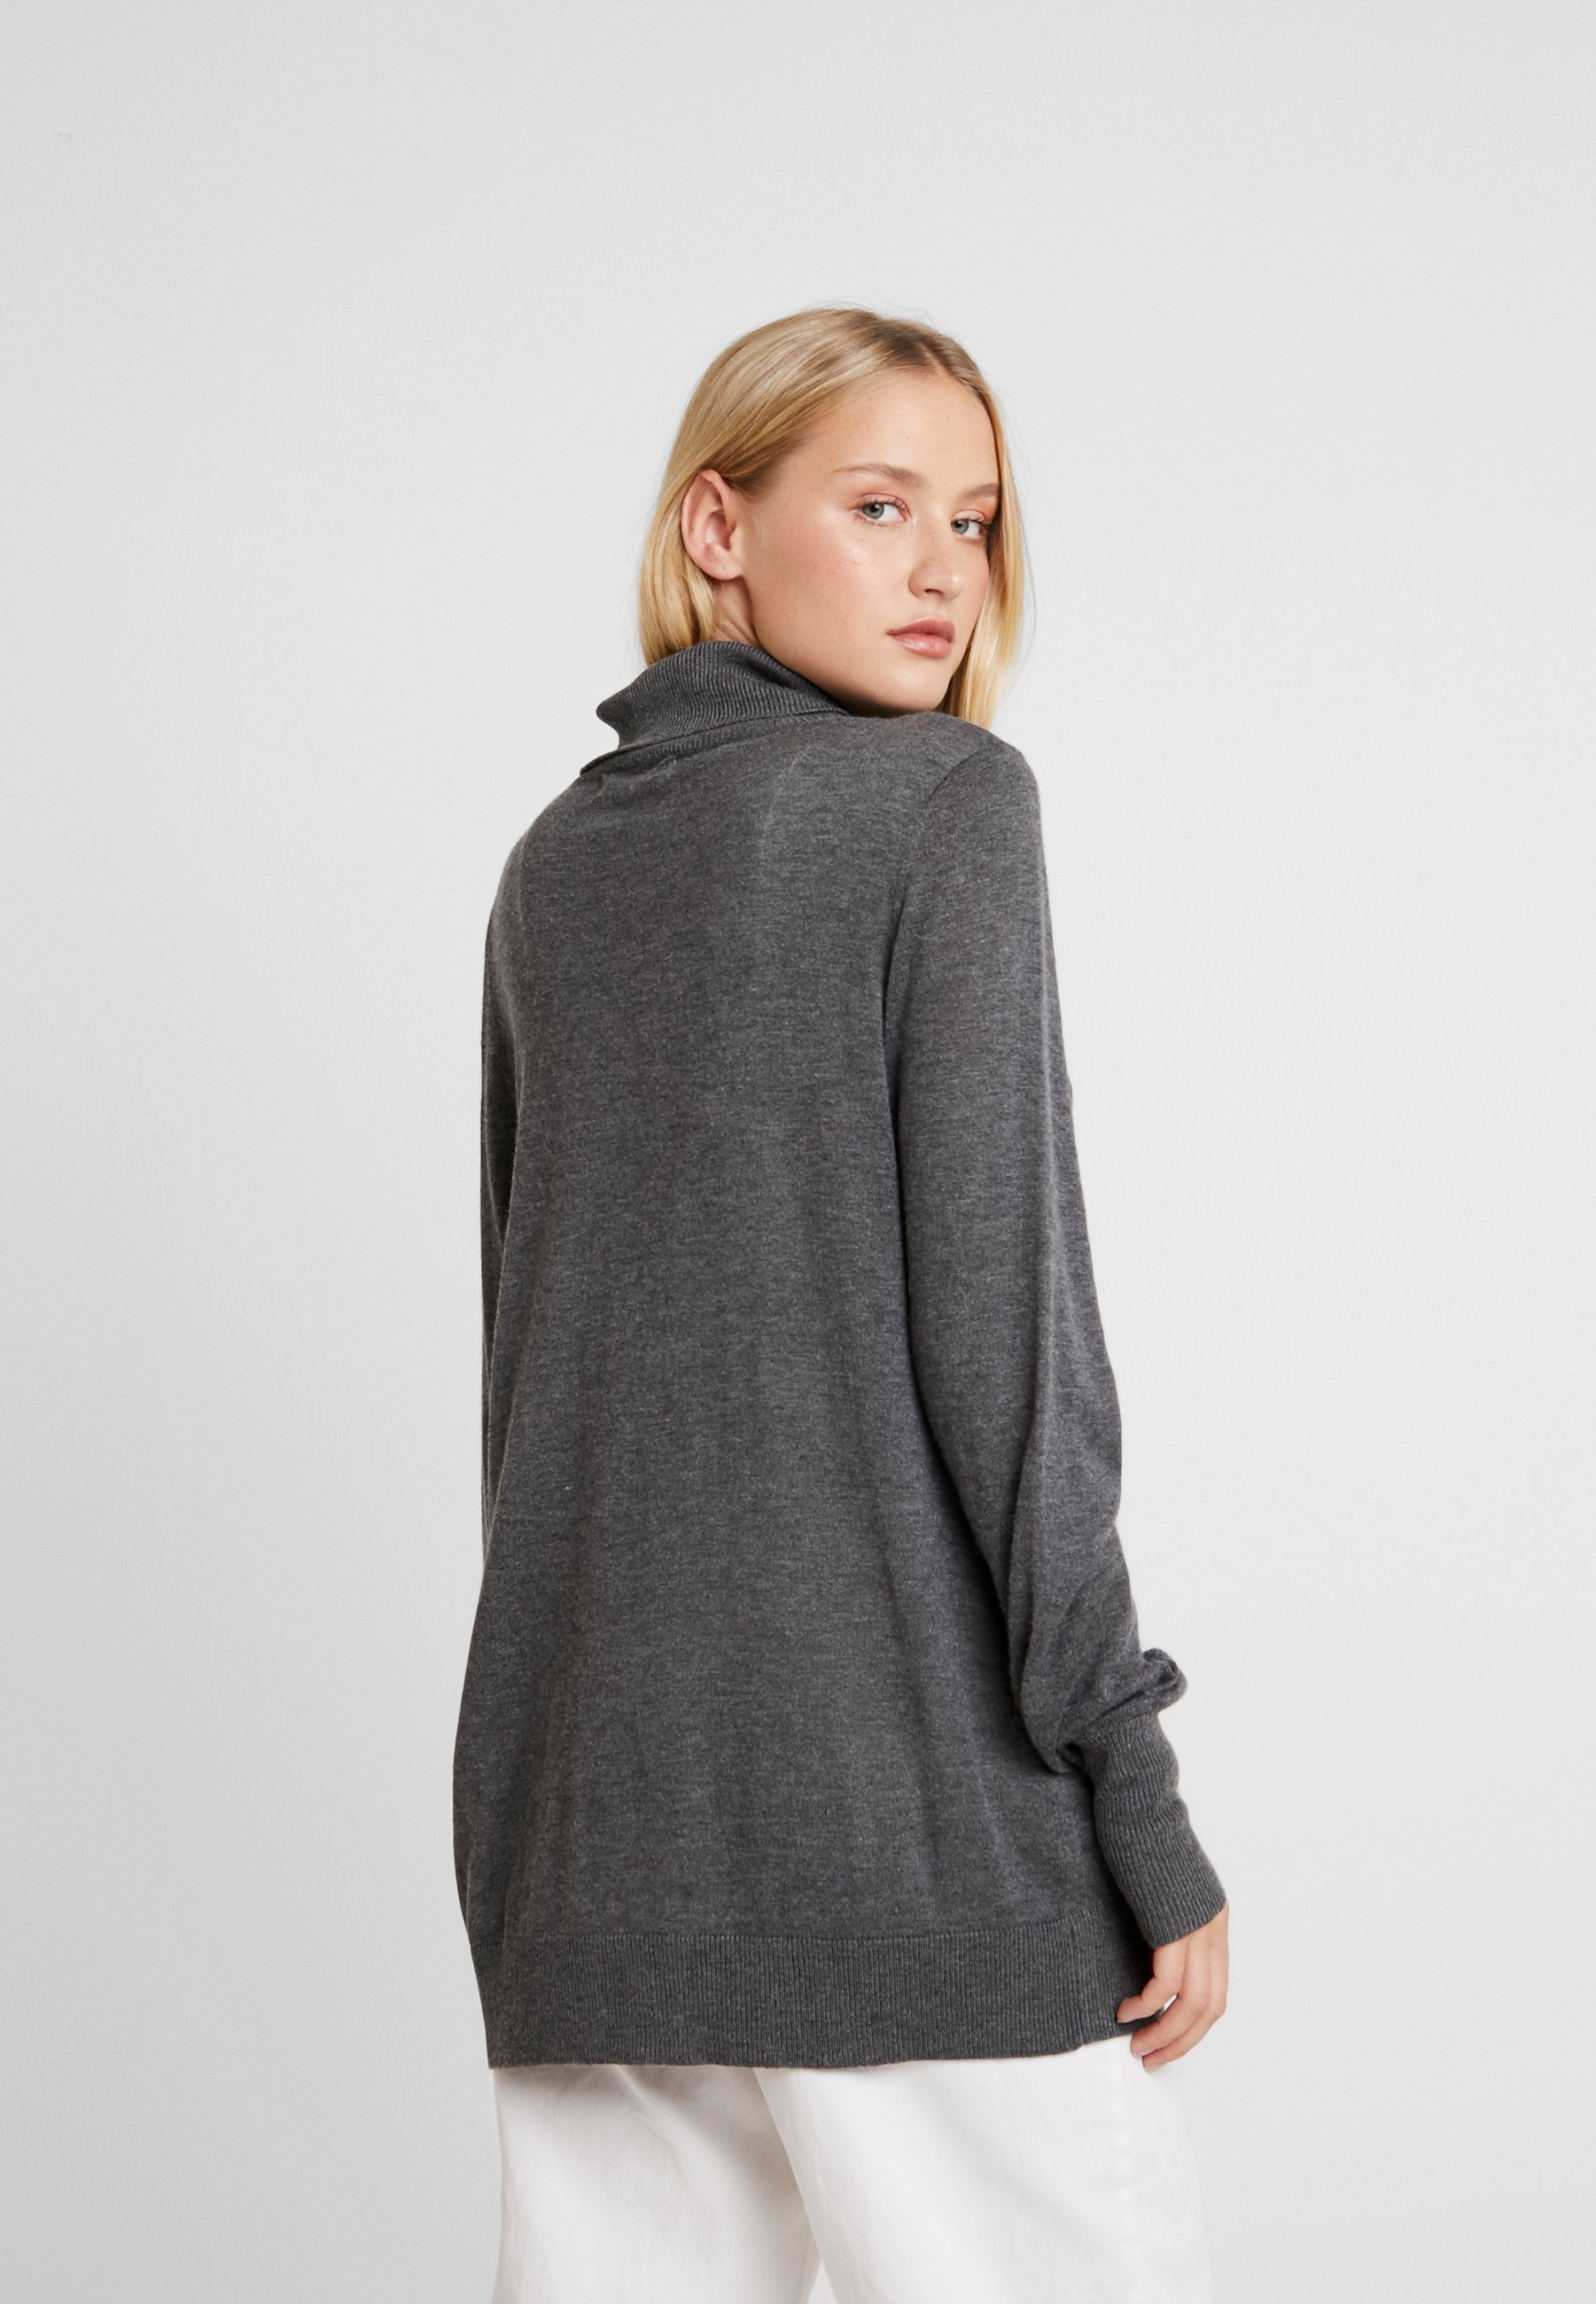 Lounge Nine MIRZALN - Pullover dark grey melange